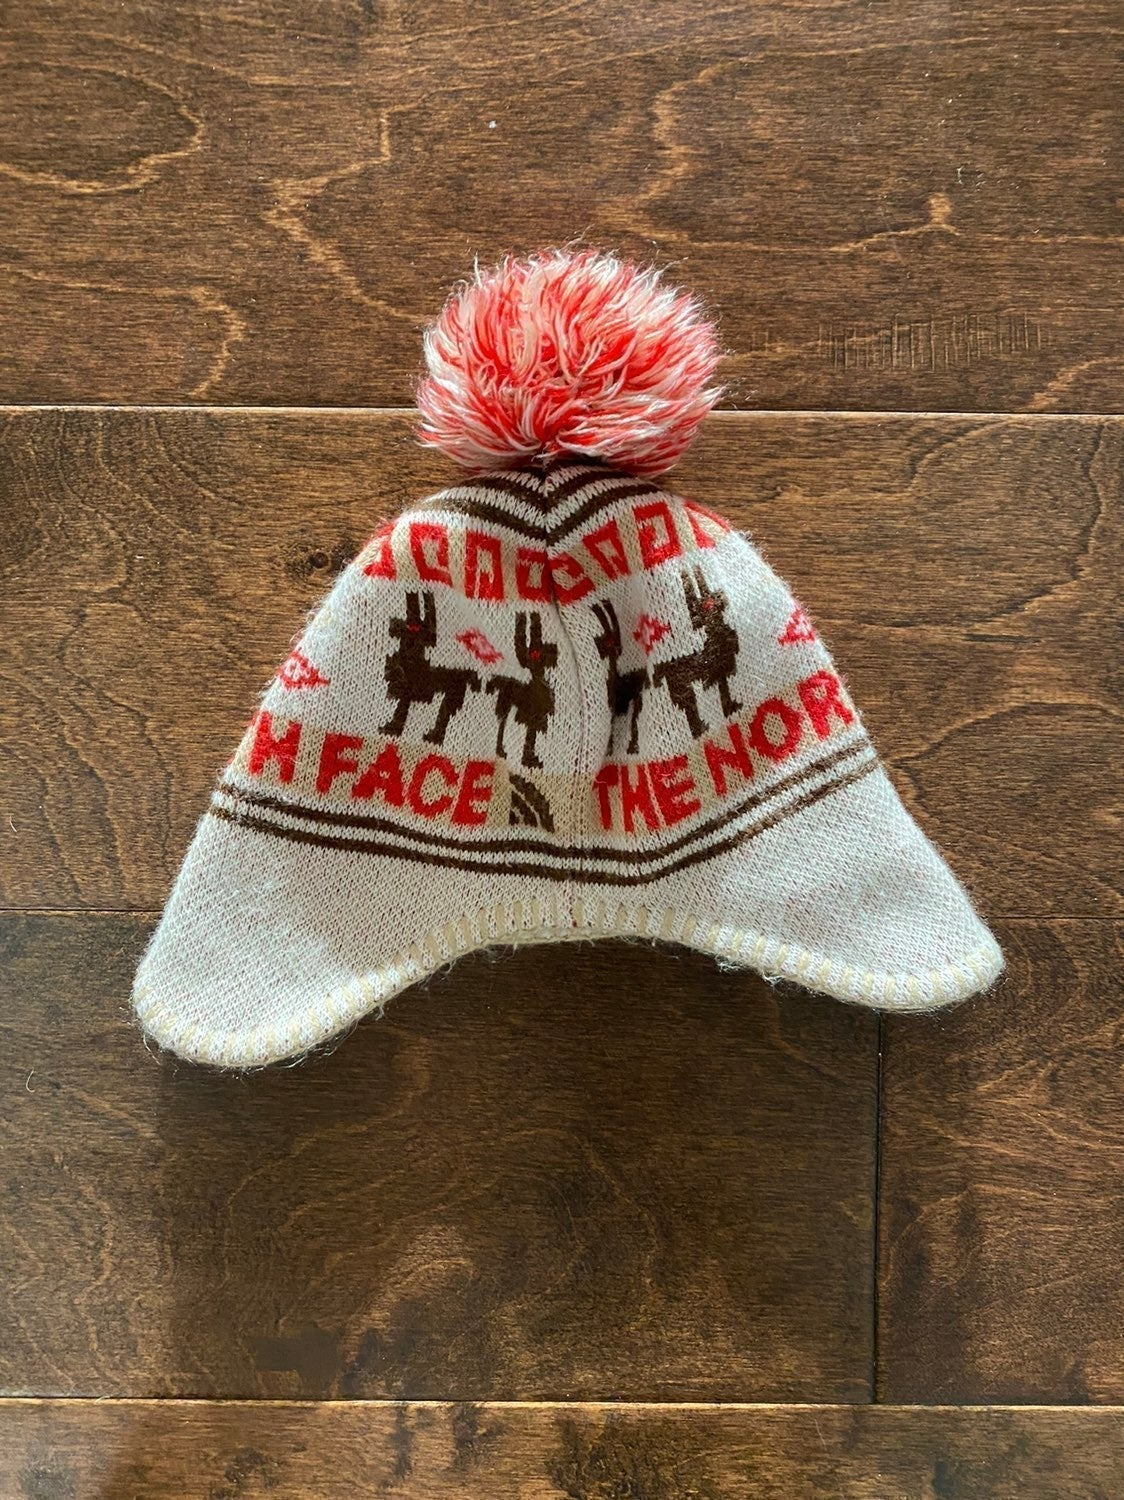 The North Face Baby Llama Beanie Hat